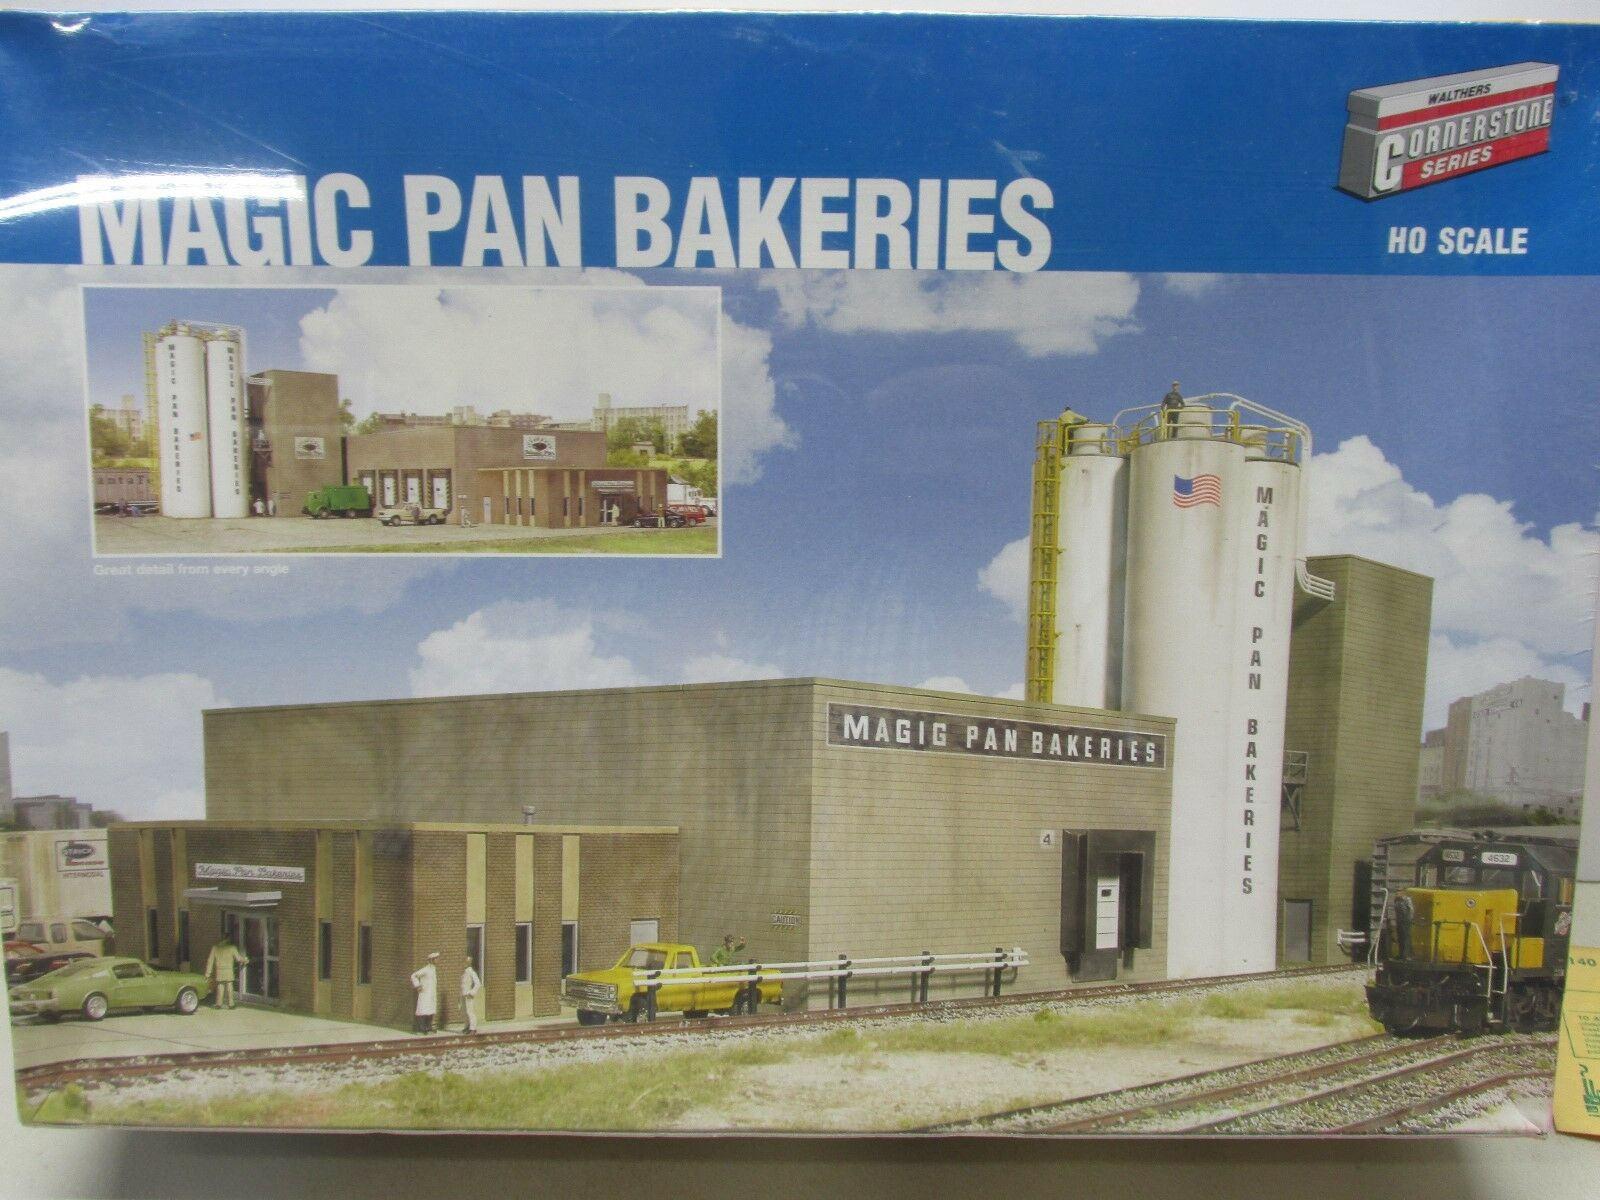 WALTHERS-MAGIC PAN BAKERIES-BUILDING KIT  HO SCALE